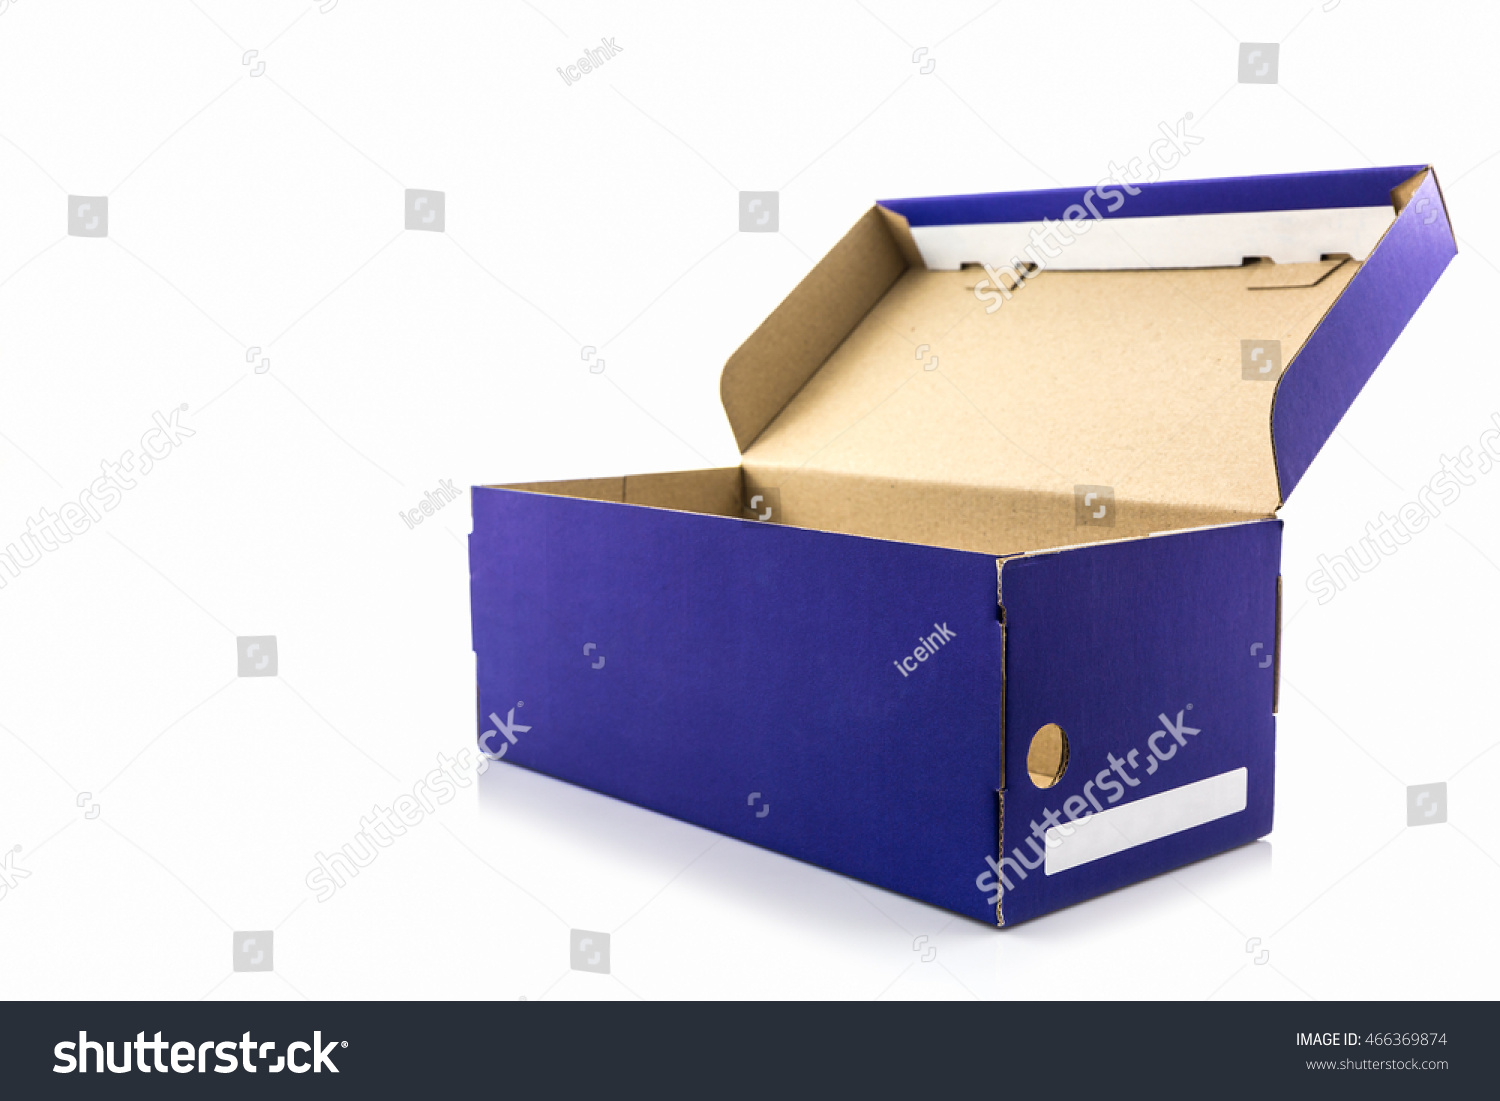 blue shoe box clipping path on stock photo royalty free 466369874